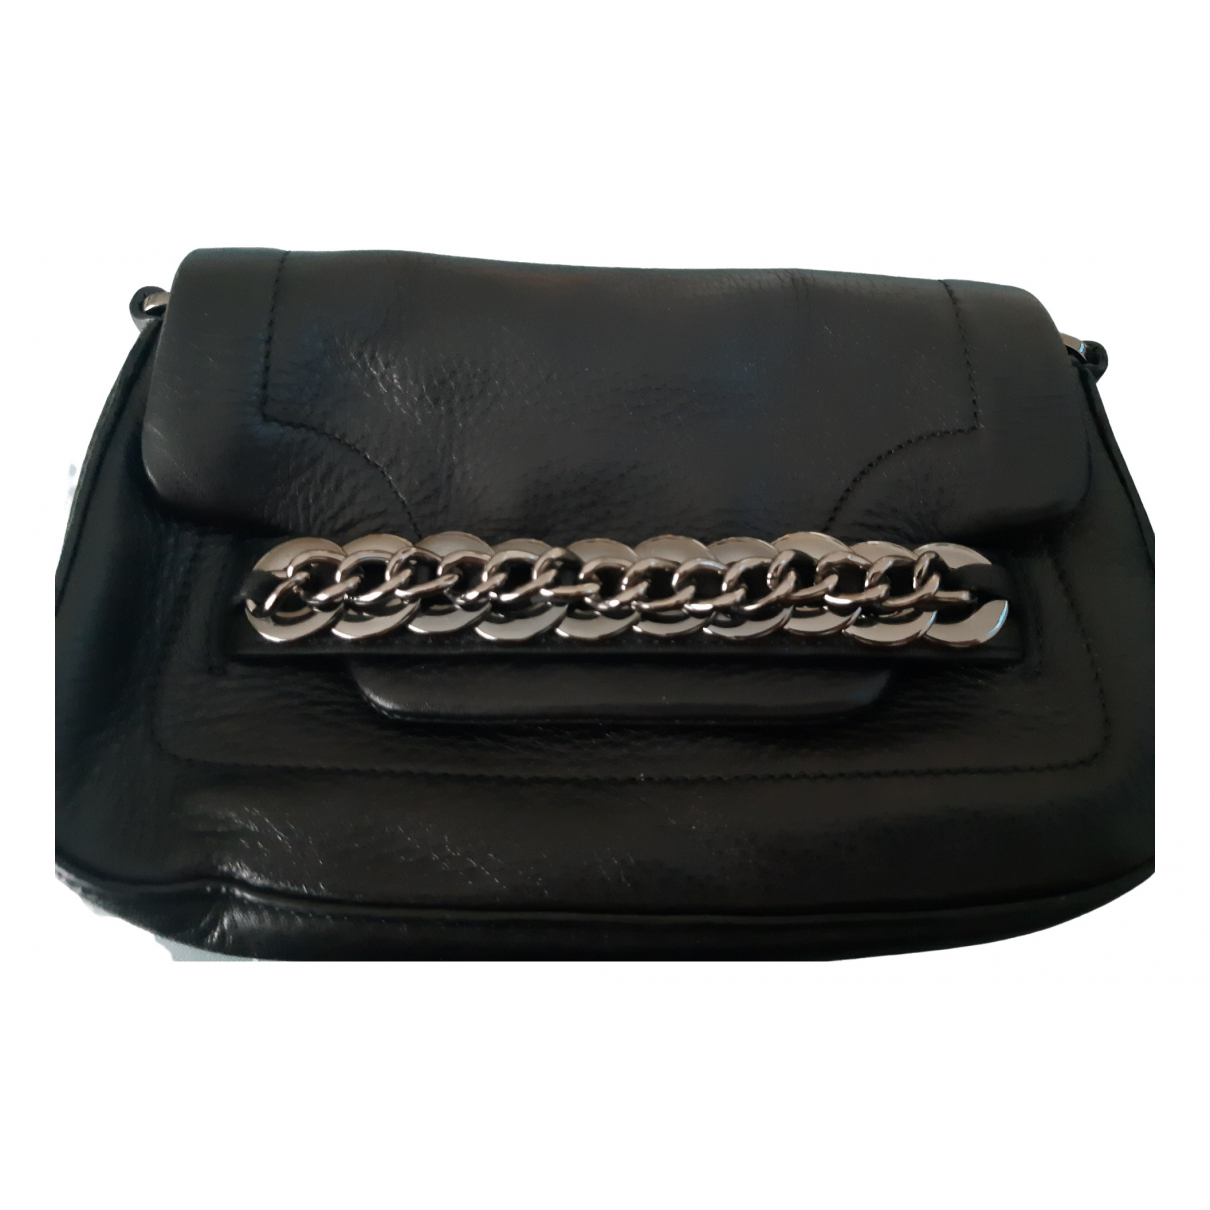 Calvin Klein \N Black Leather Clutch bag for Women \N